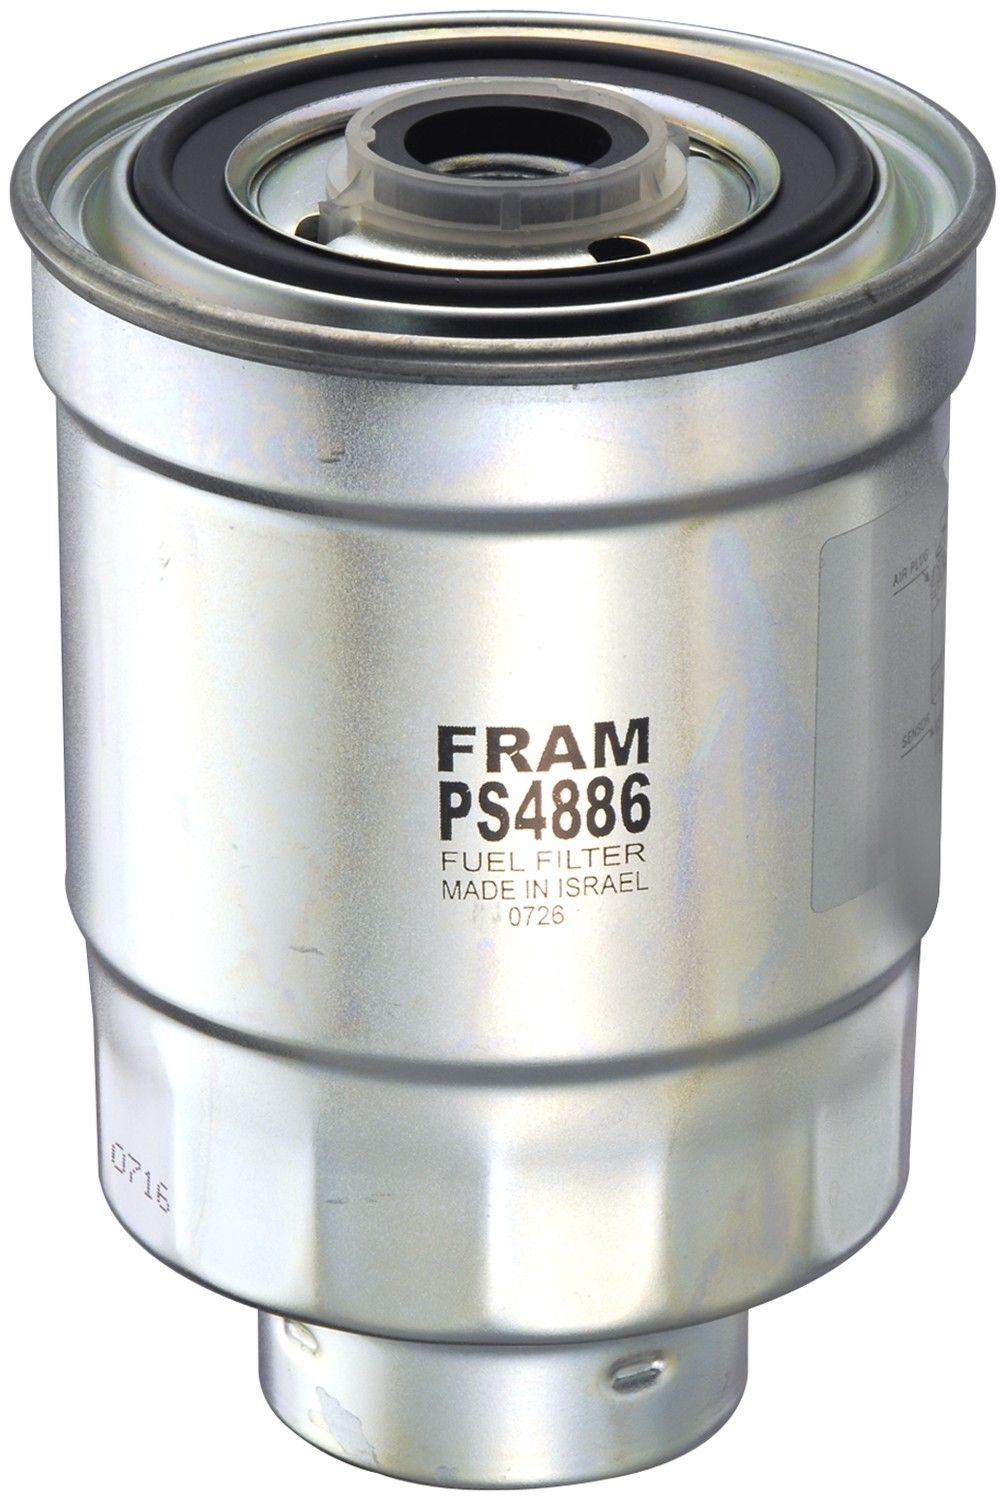 1985 Dodge Ram 50 Fuel Filter 4 Cyl 2.3L (Fram PS4886) Spin-on Fuel Water  Separator Filter .